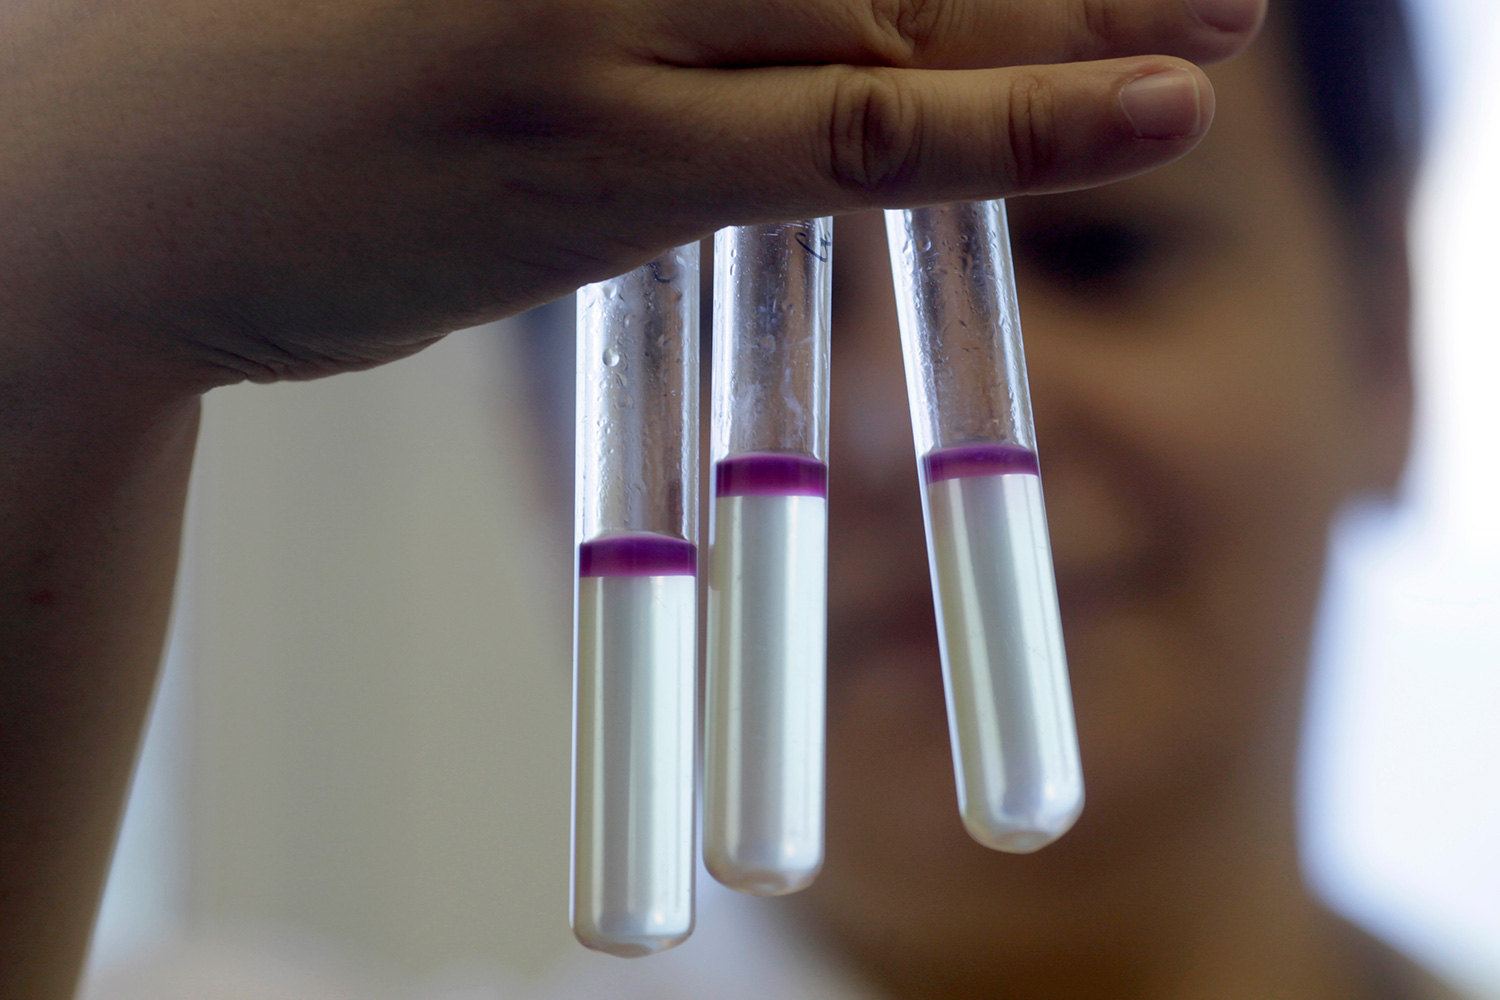 "Researcher Marina Soloviecika holds tubes of a deadly strain of E.coli isolated during an outbreak in Riga, Latvia on June 9, 2011. Many other types of bacteria live safely in or on the human body. The image shows a few testtubes filled with liquid that has a very distinctive purple ""lid."" The researcher can be seen blurred out in the background. REUTERS/Ints Kalnins"